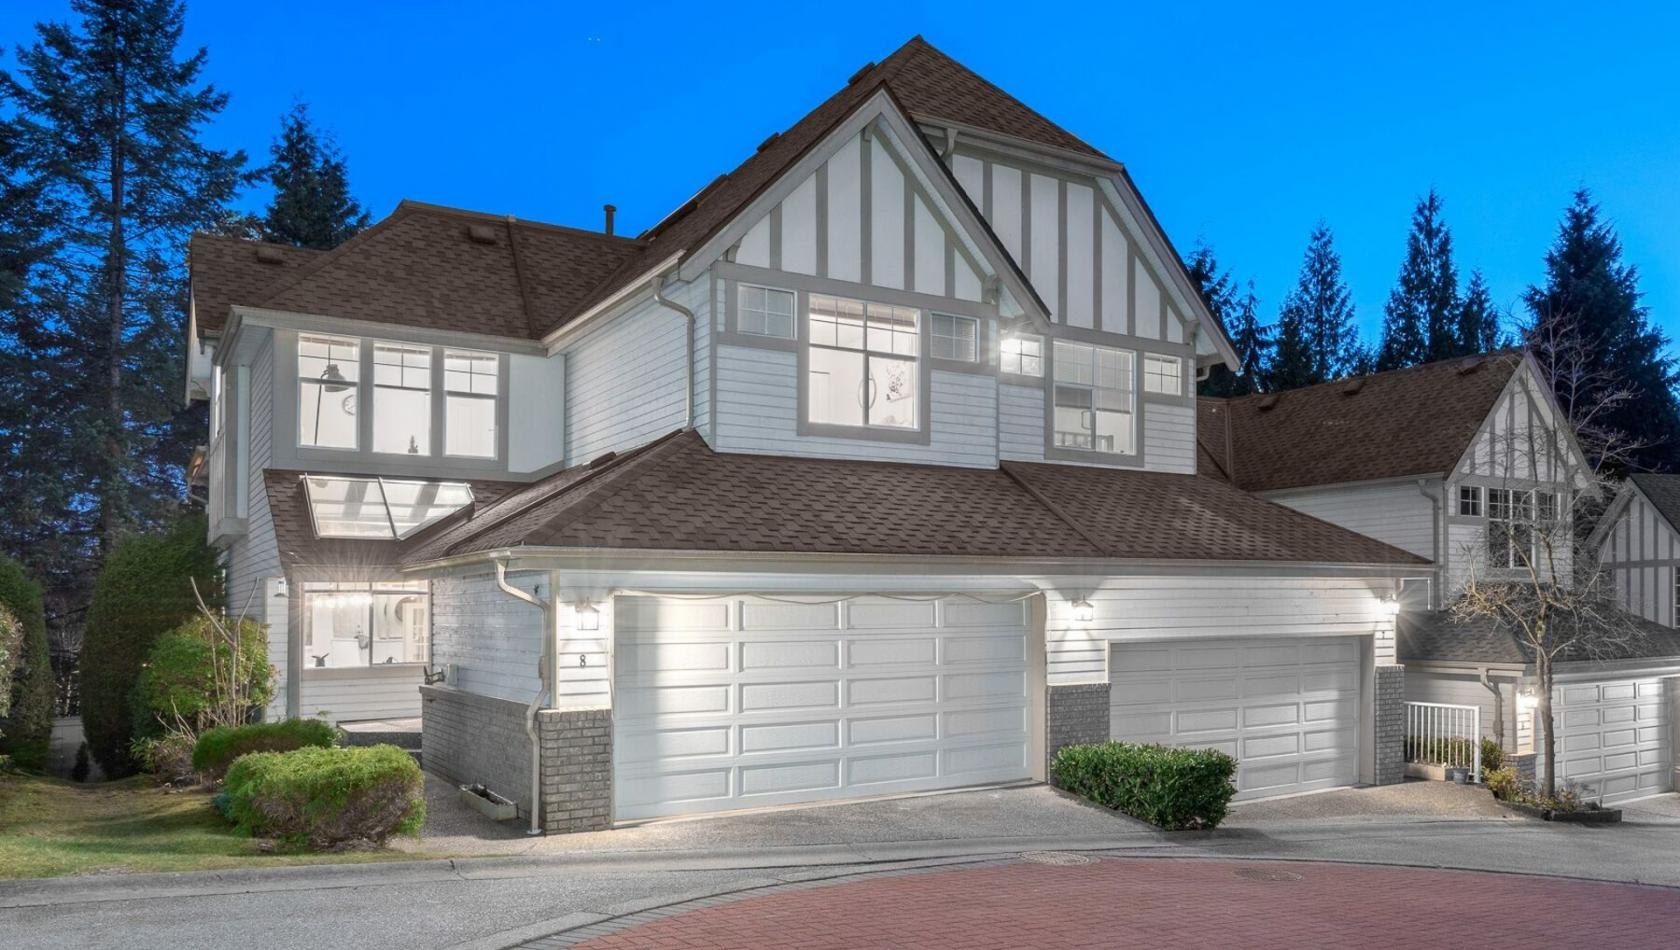 8 - 1 Aspenwood Drive, Heritage Woods PM, Port Moody